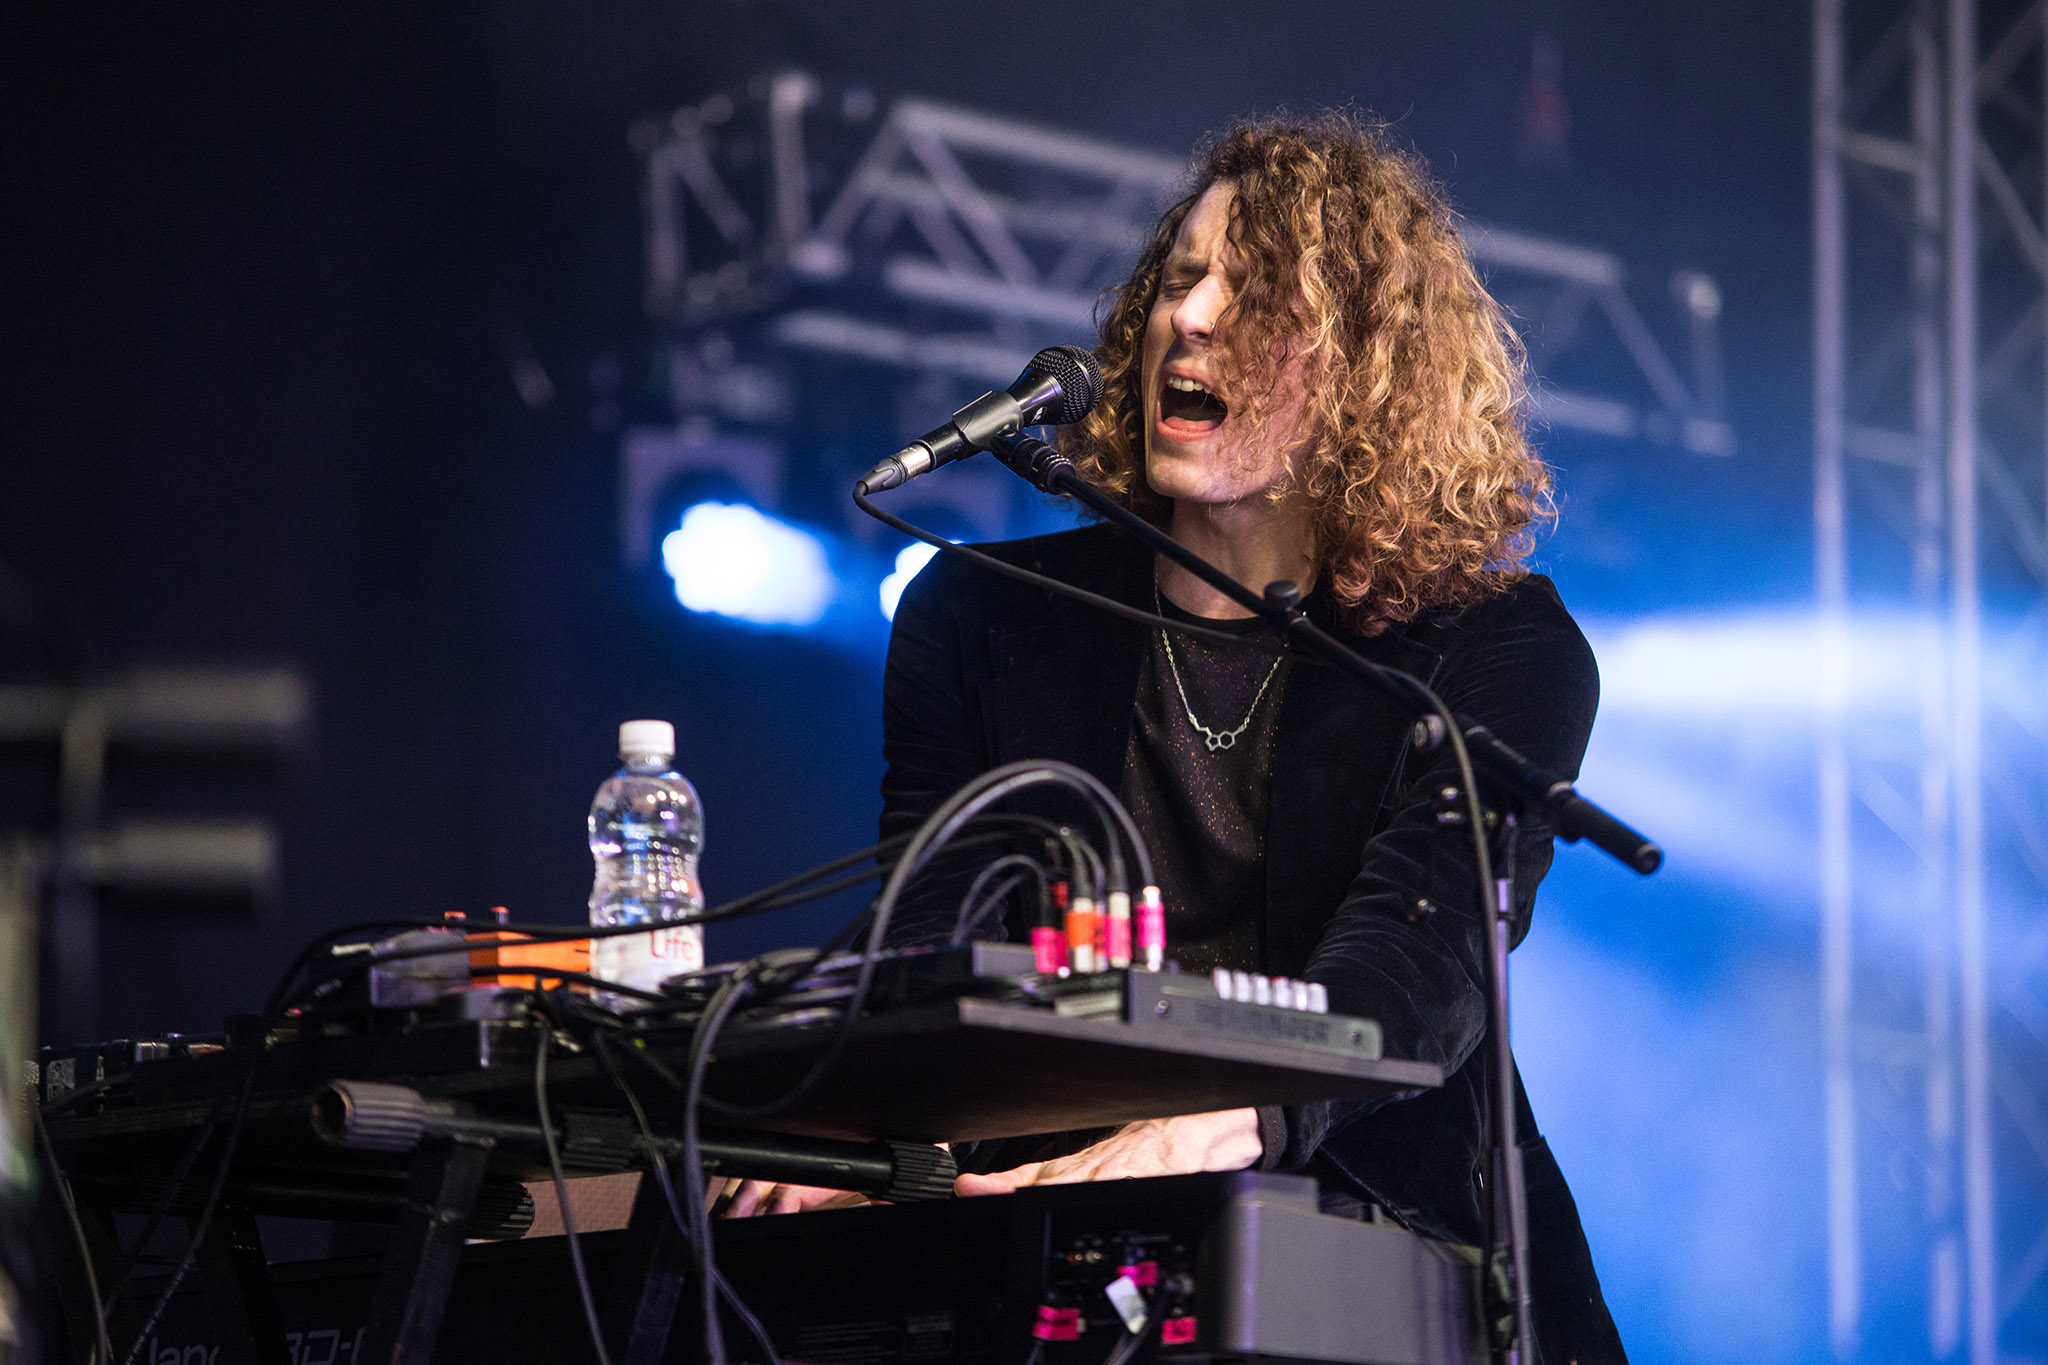 Mystery Jets and Idles to support The Maccabees on final gigs